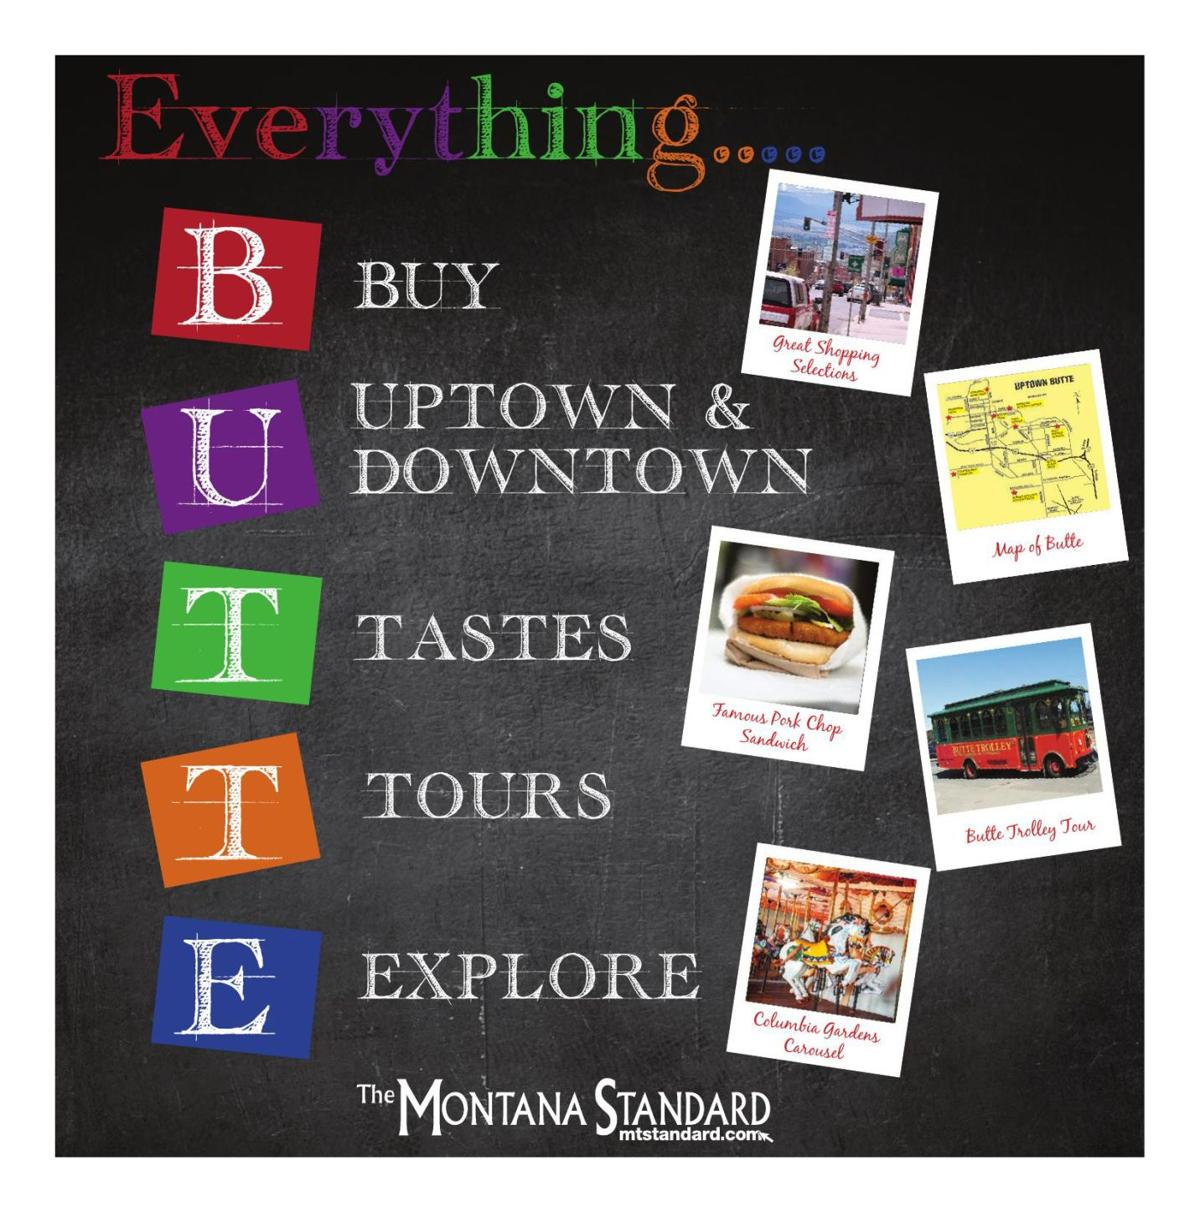 Everything Butte June 2019